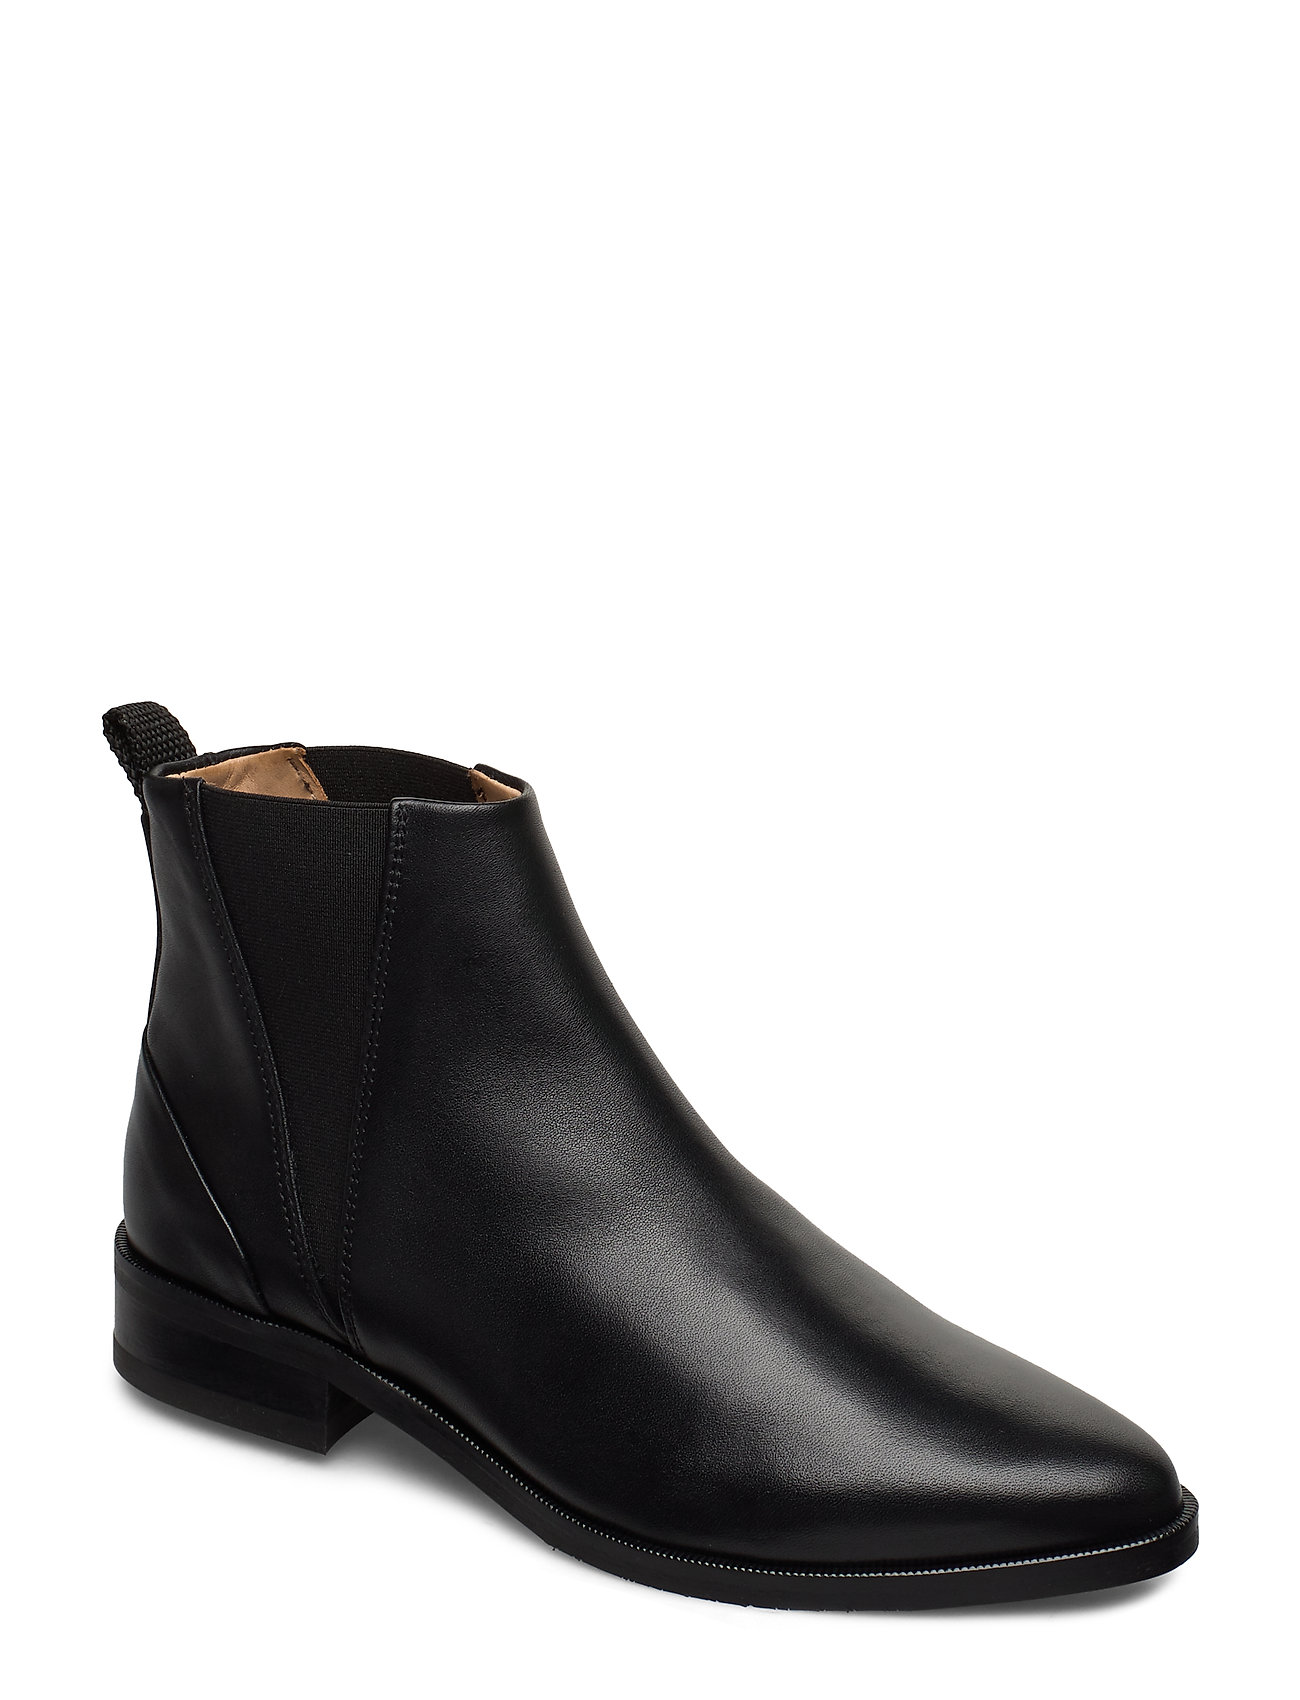 Image of Prime Chelsea Shoes Boots Ankle Boots Ankle Boot - Flat Sort Royal RepubliQ (3415187581)